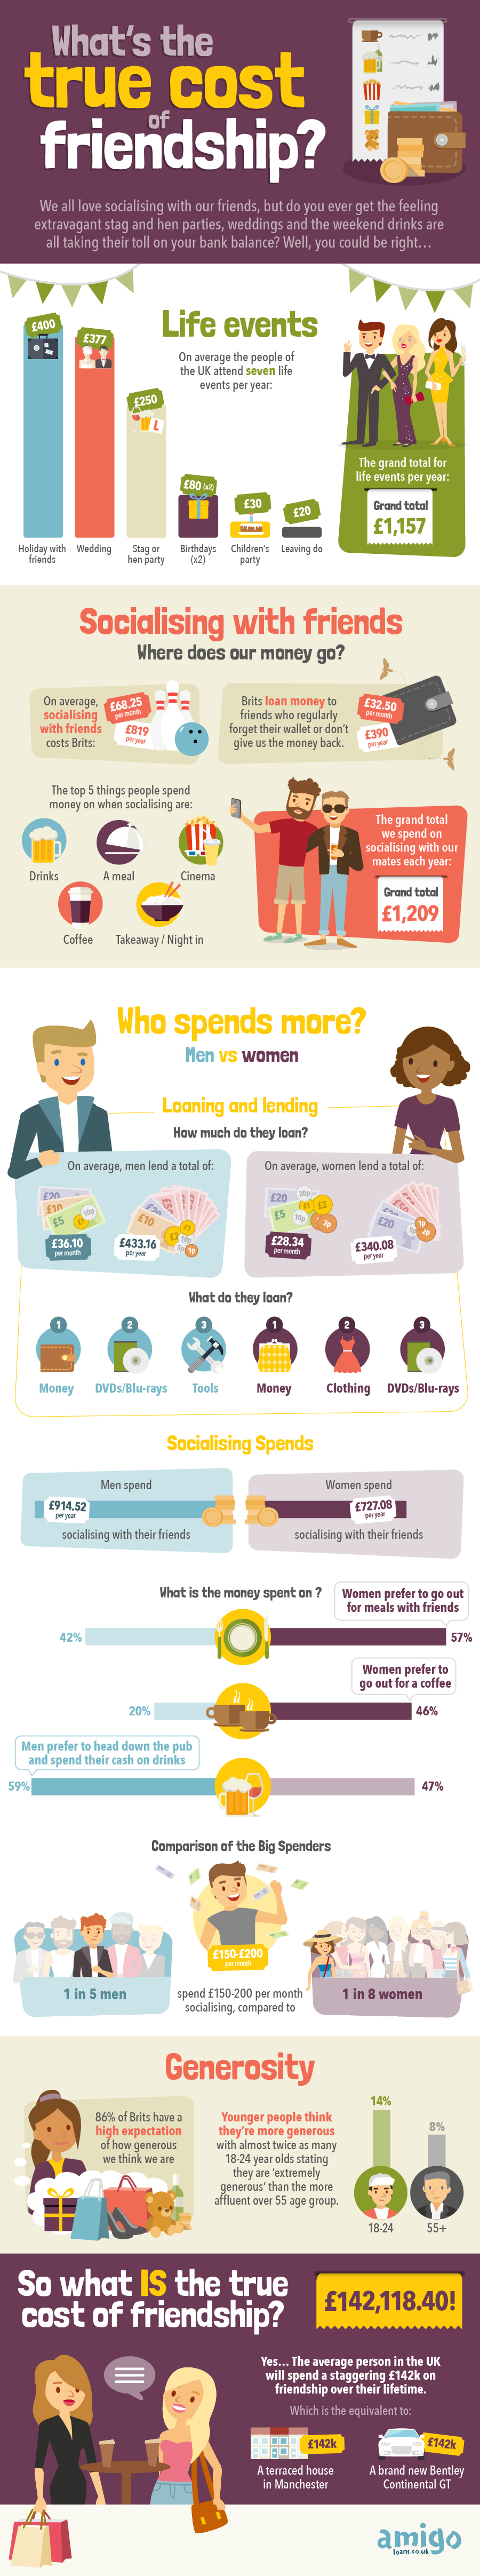 True Cost of Friendship infographic